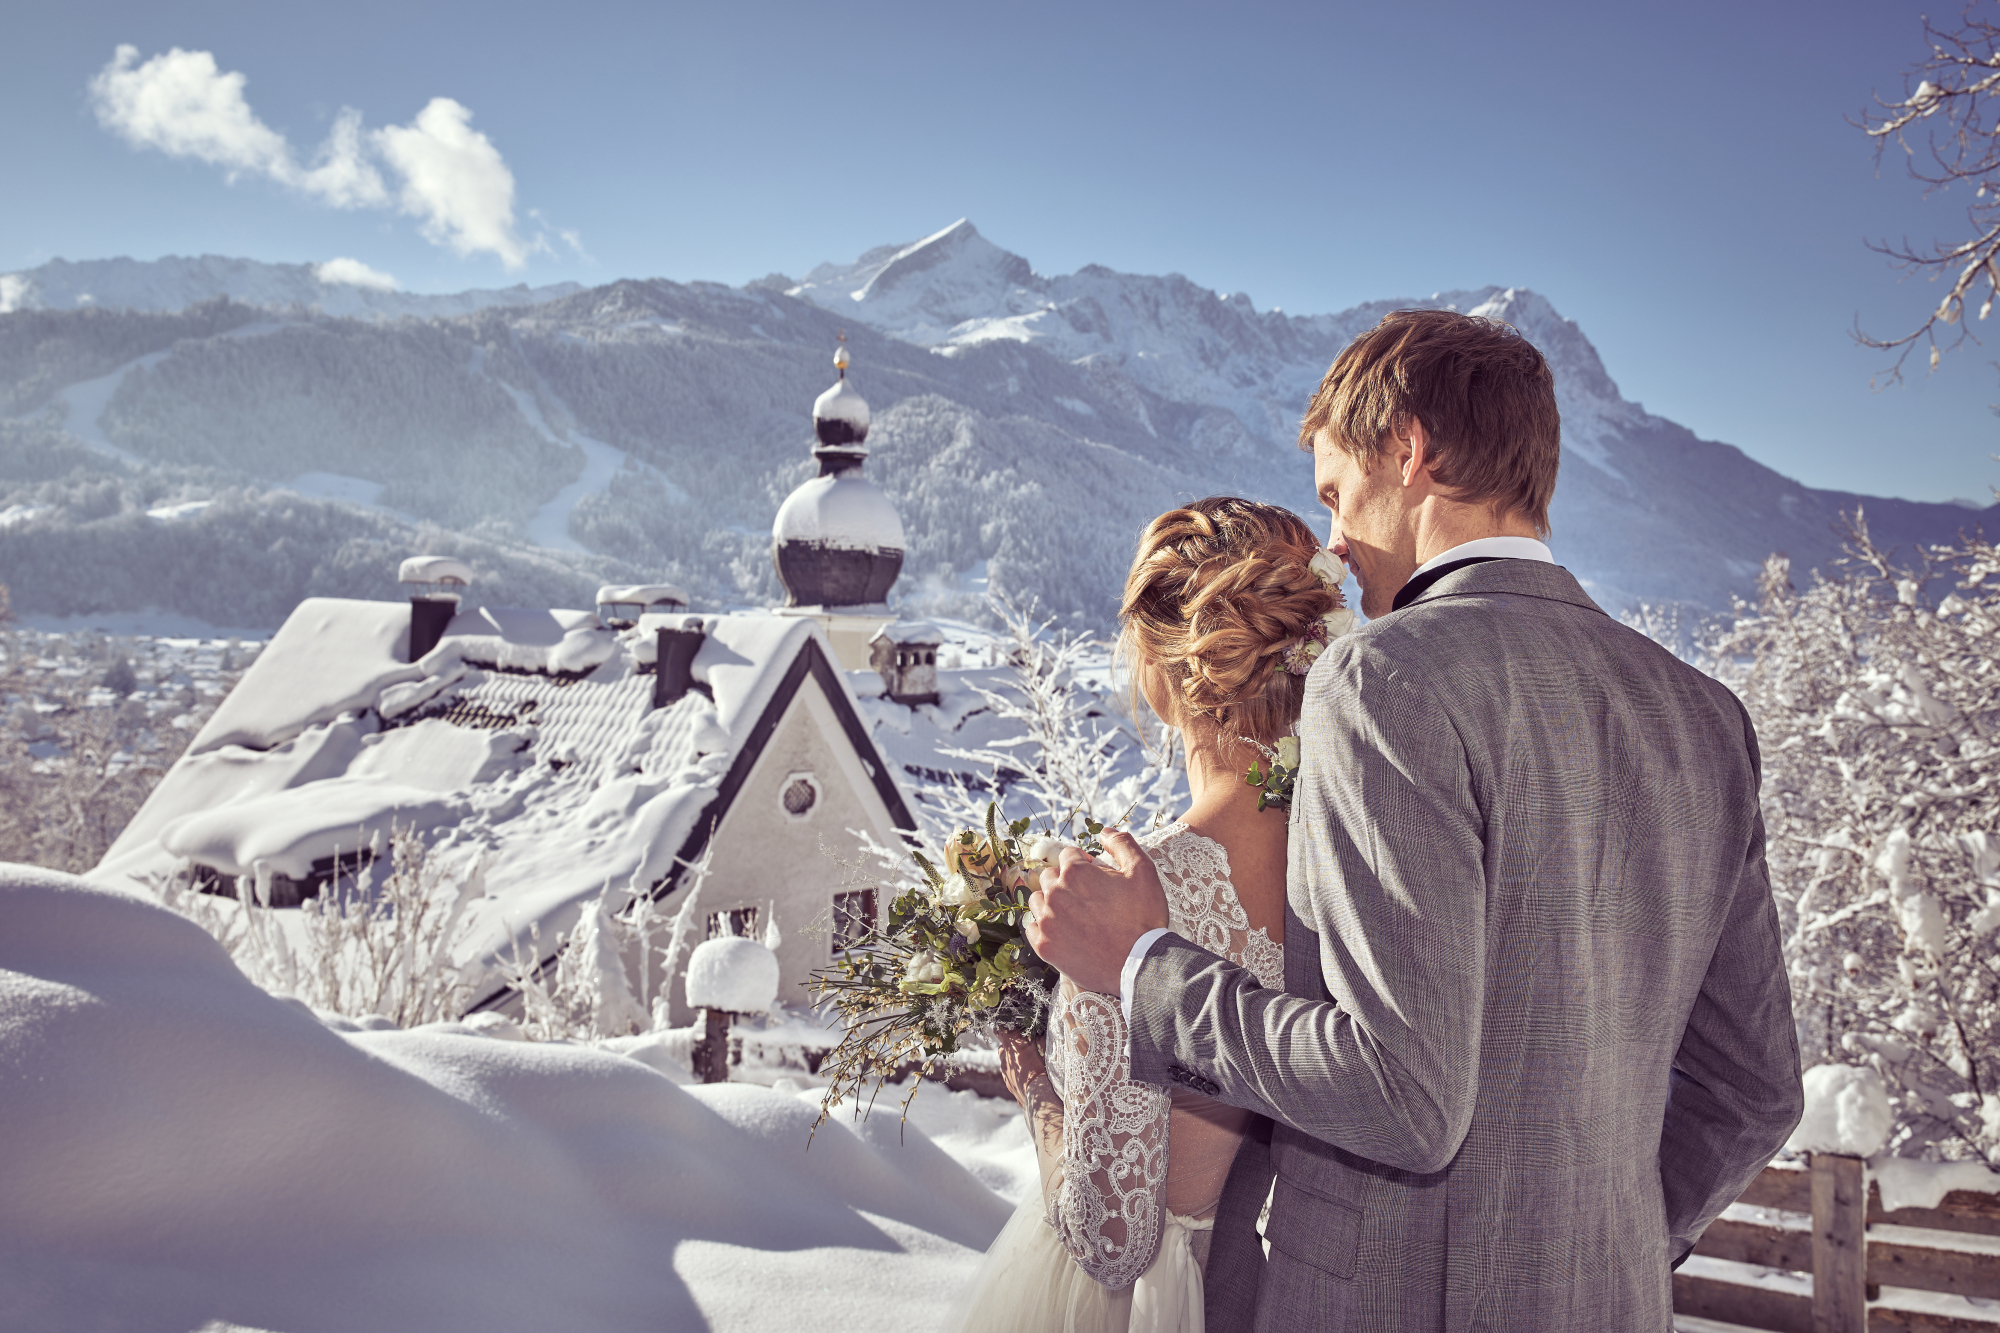 Hochzeit in Garmisch, winter mountain wedding, elopement, wedding planner, Hochzeitsplanerin, Marc Gilsdorf, Uschi Glas, weddingstyled